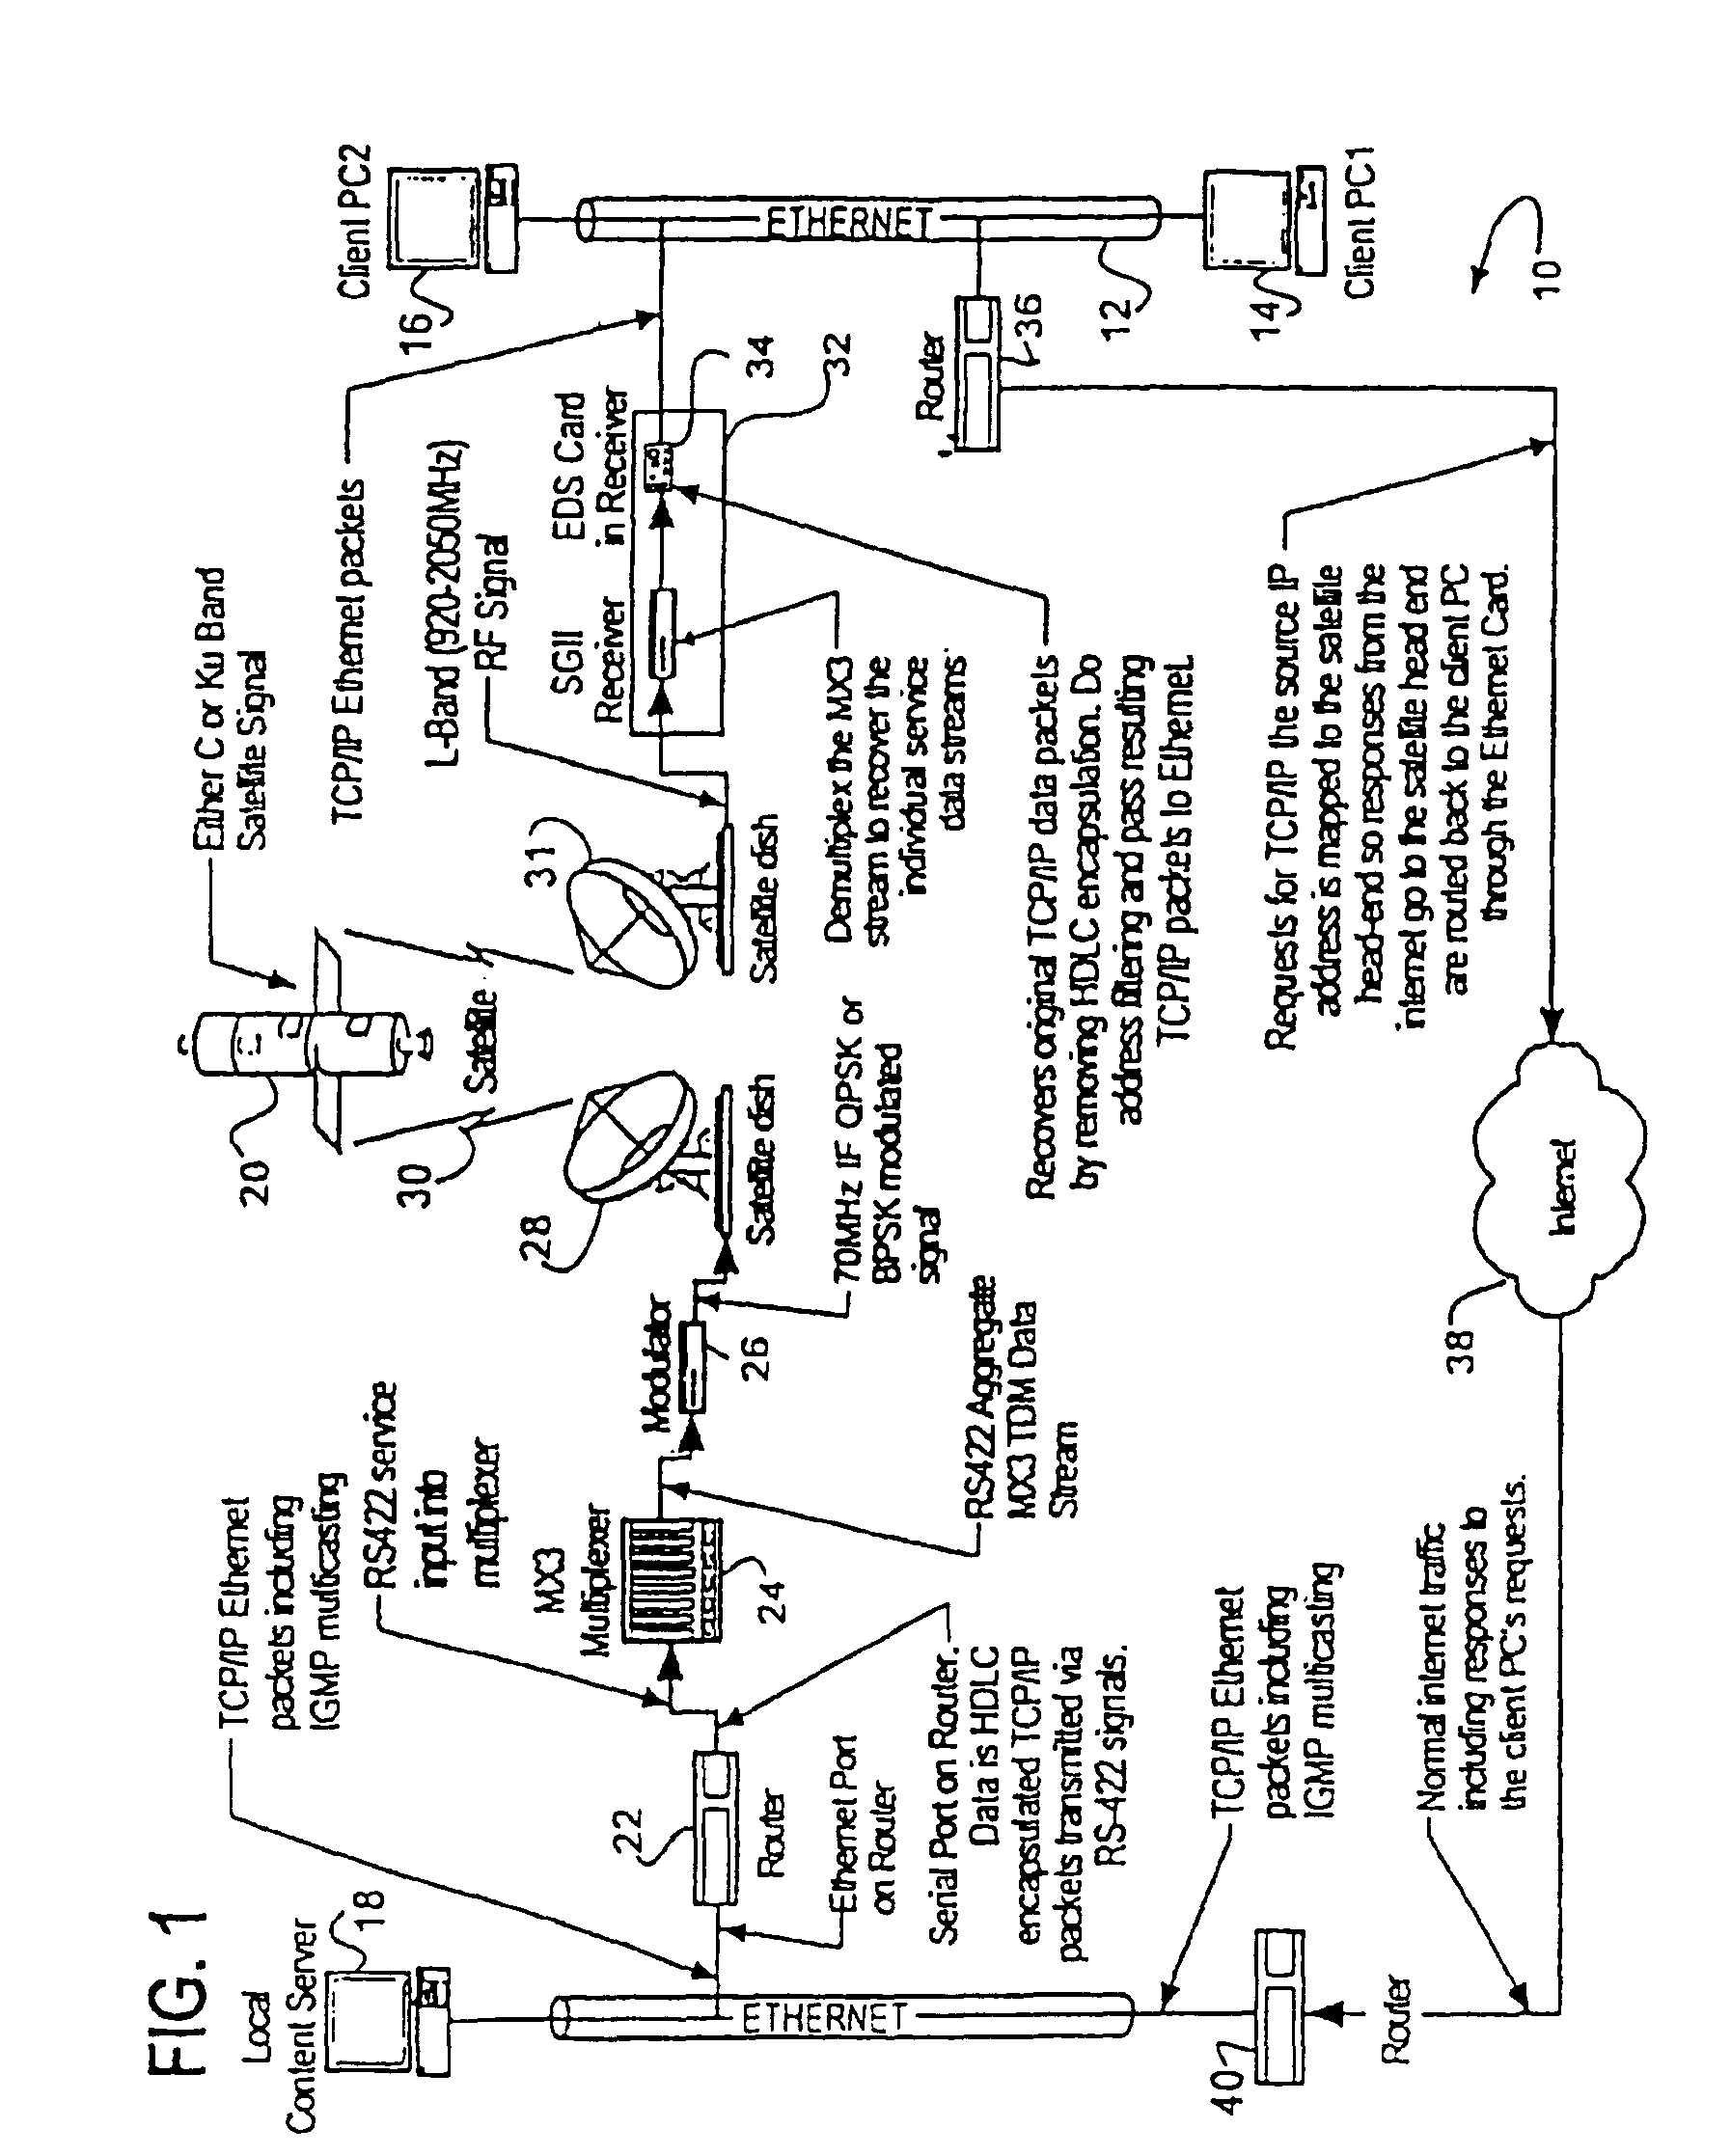 Wiring Diagram For Stev Diagrams Steve Morse Dimarzio Stereo System